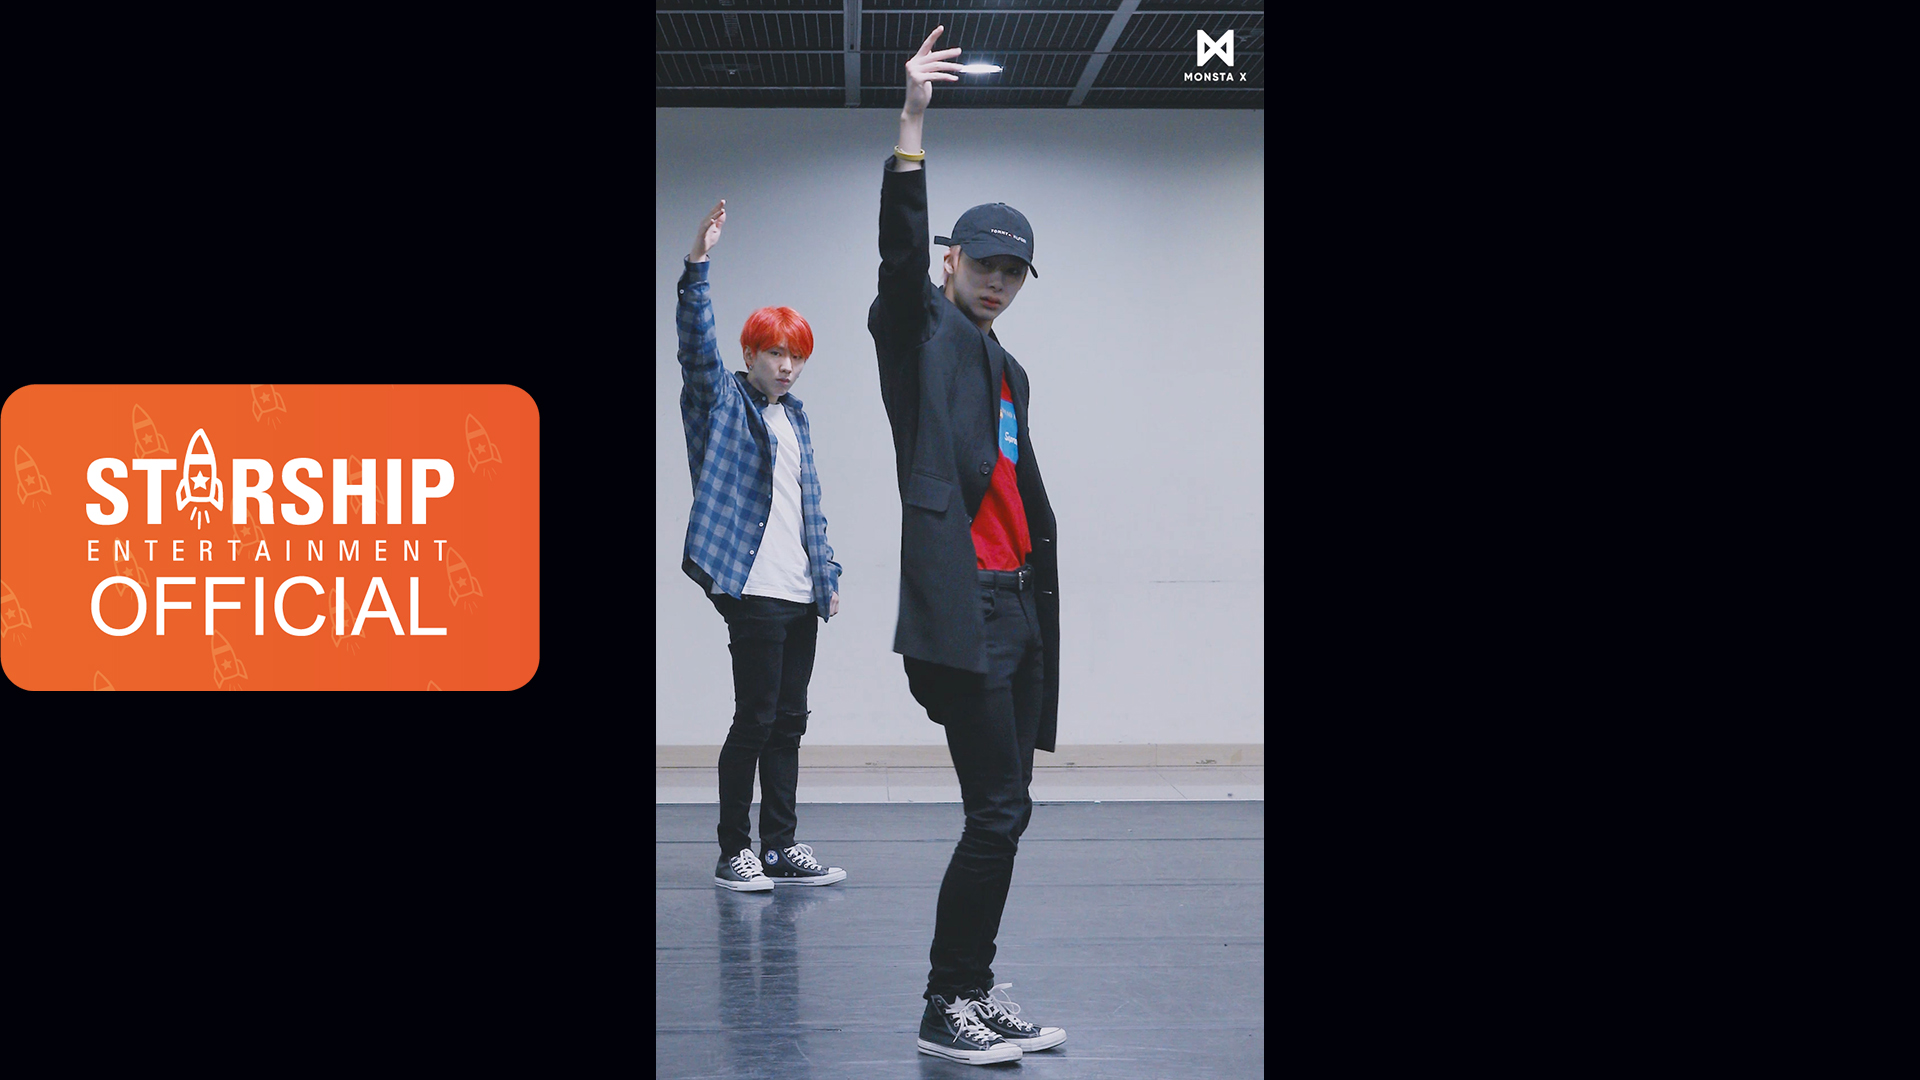 [HYUNGWON][Dance Practice] 몬스타엑스 (MONSTA X) - 'JEALOUSY' Vertical Video